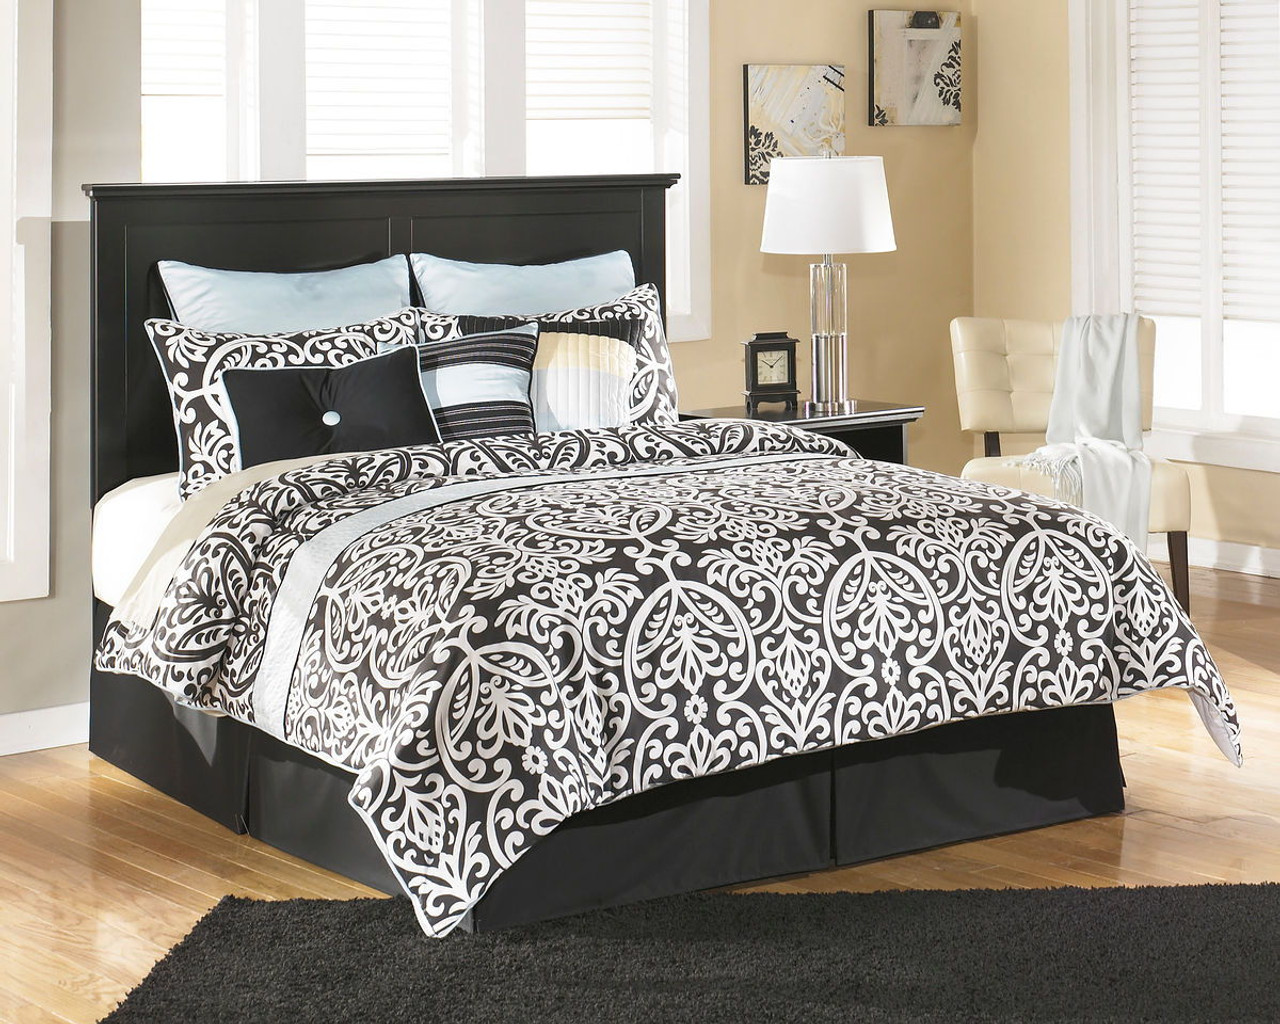 Picture of: The Maribel Black Queen Full Panel Headboard Available At Regal House Outlet Serving New Bedford Ma And Surrounding Areas